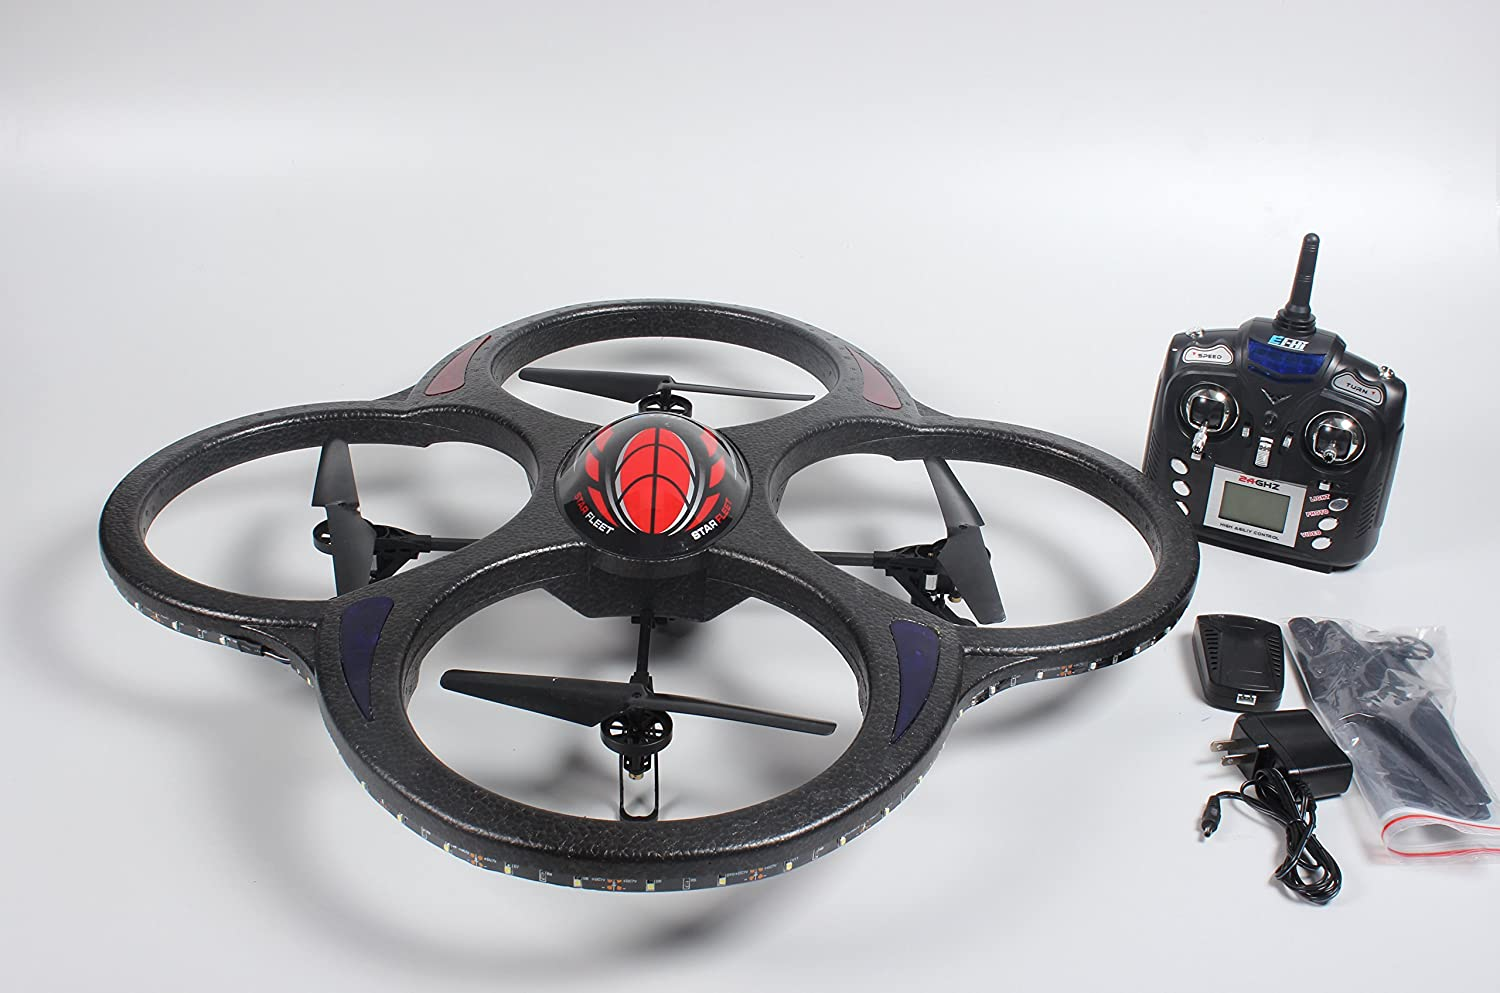 Amazon Ei Hi S911C Huge 24GHz 65 Channel 6 Axis Gyro LED Light RC Quadcopter UFO With Camera Toys Games